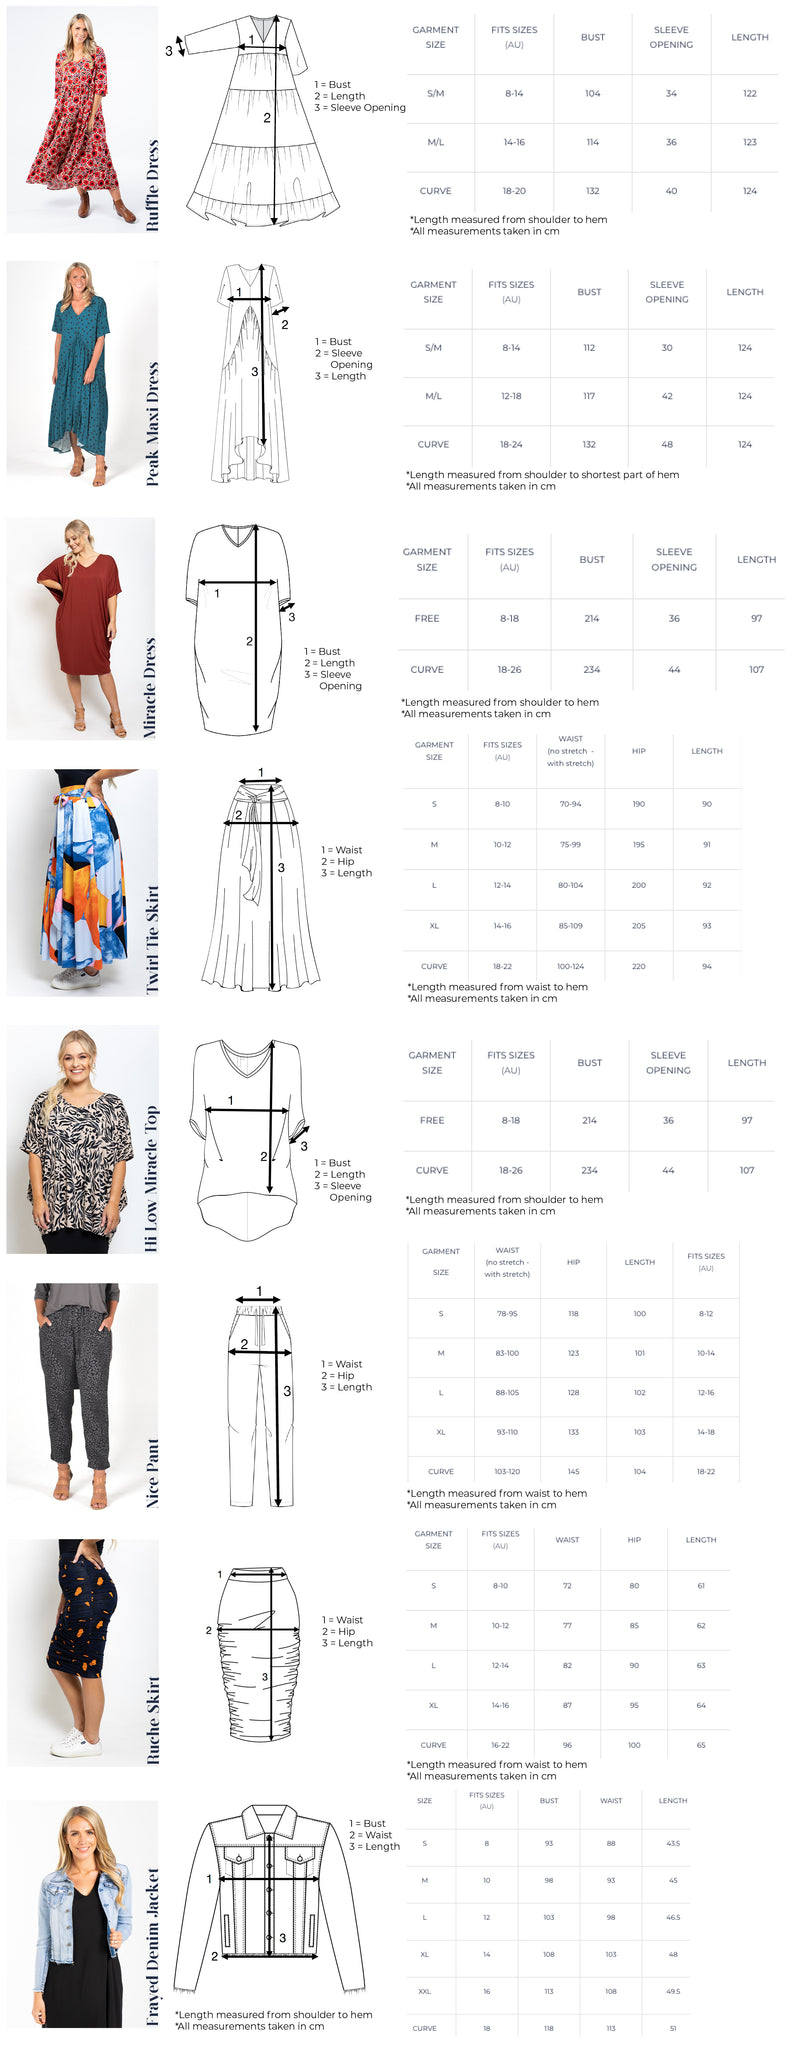 size and fit measurement guide womens fashion